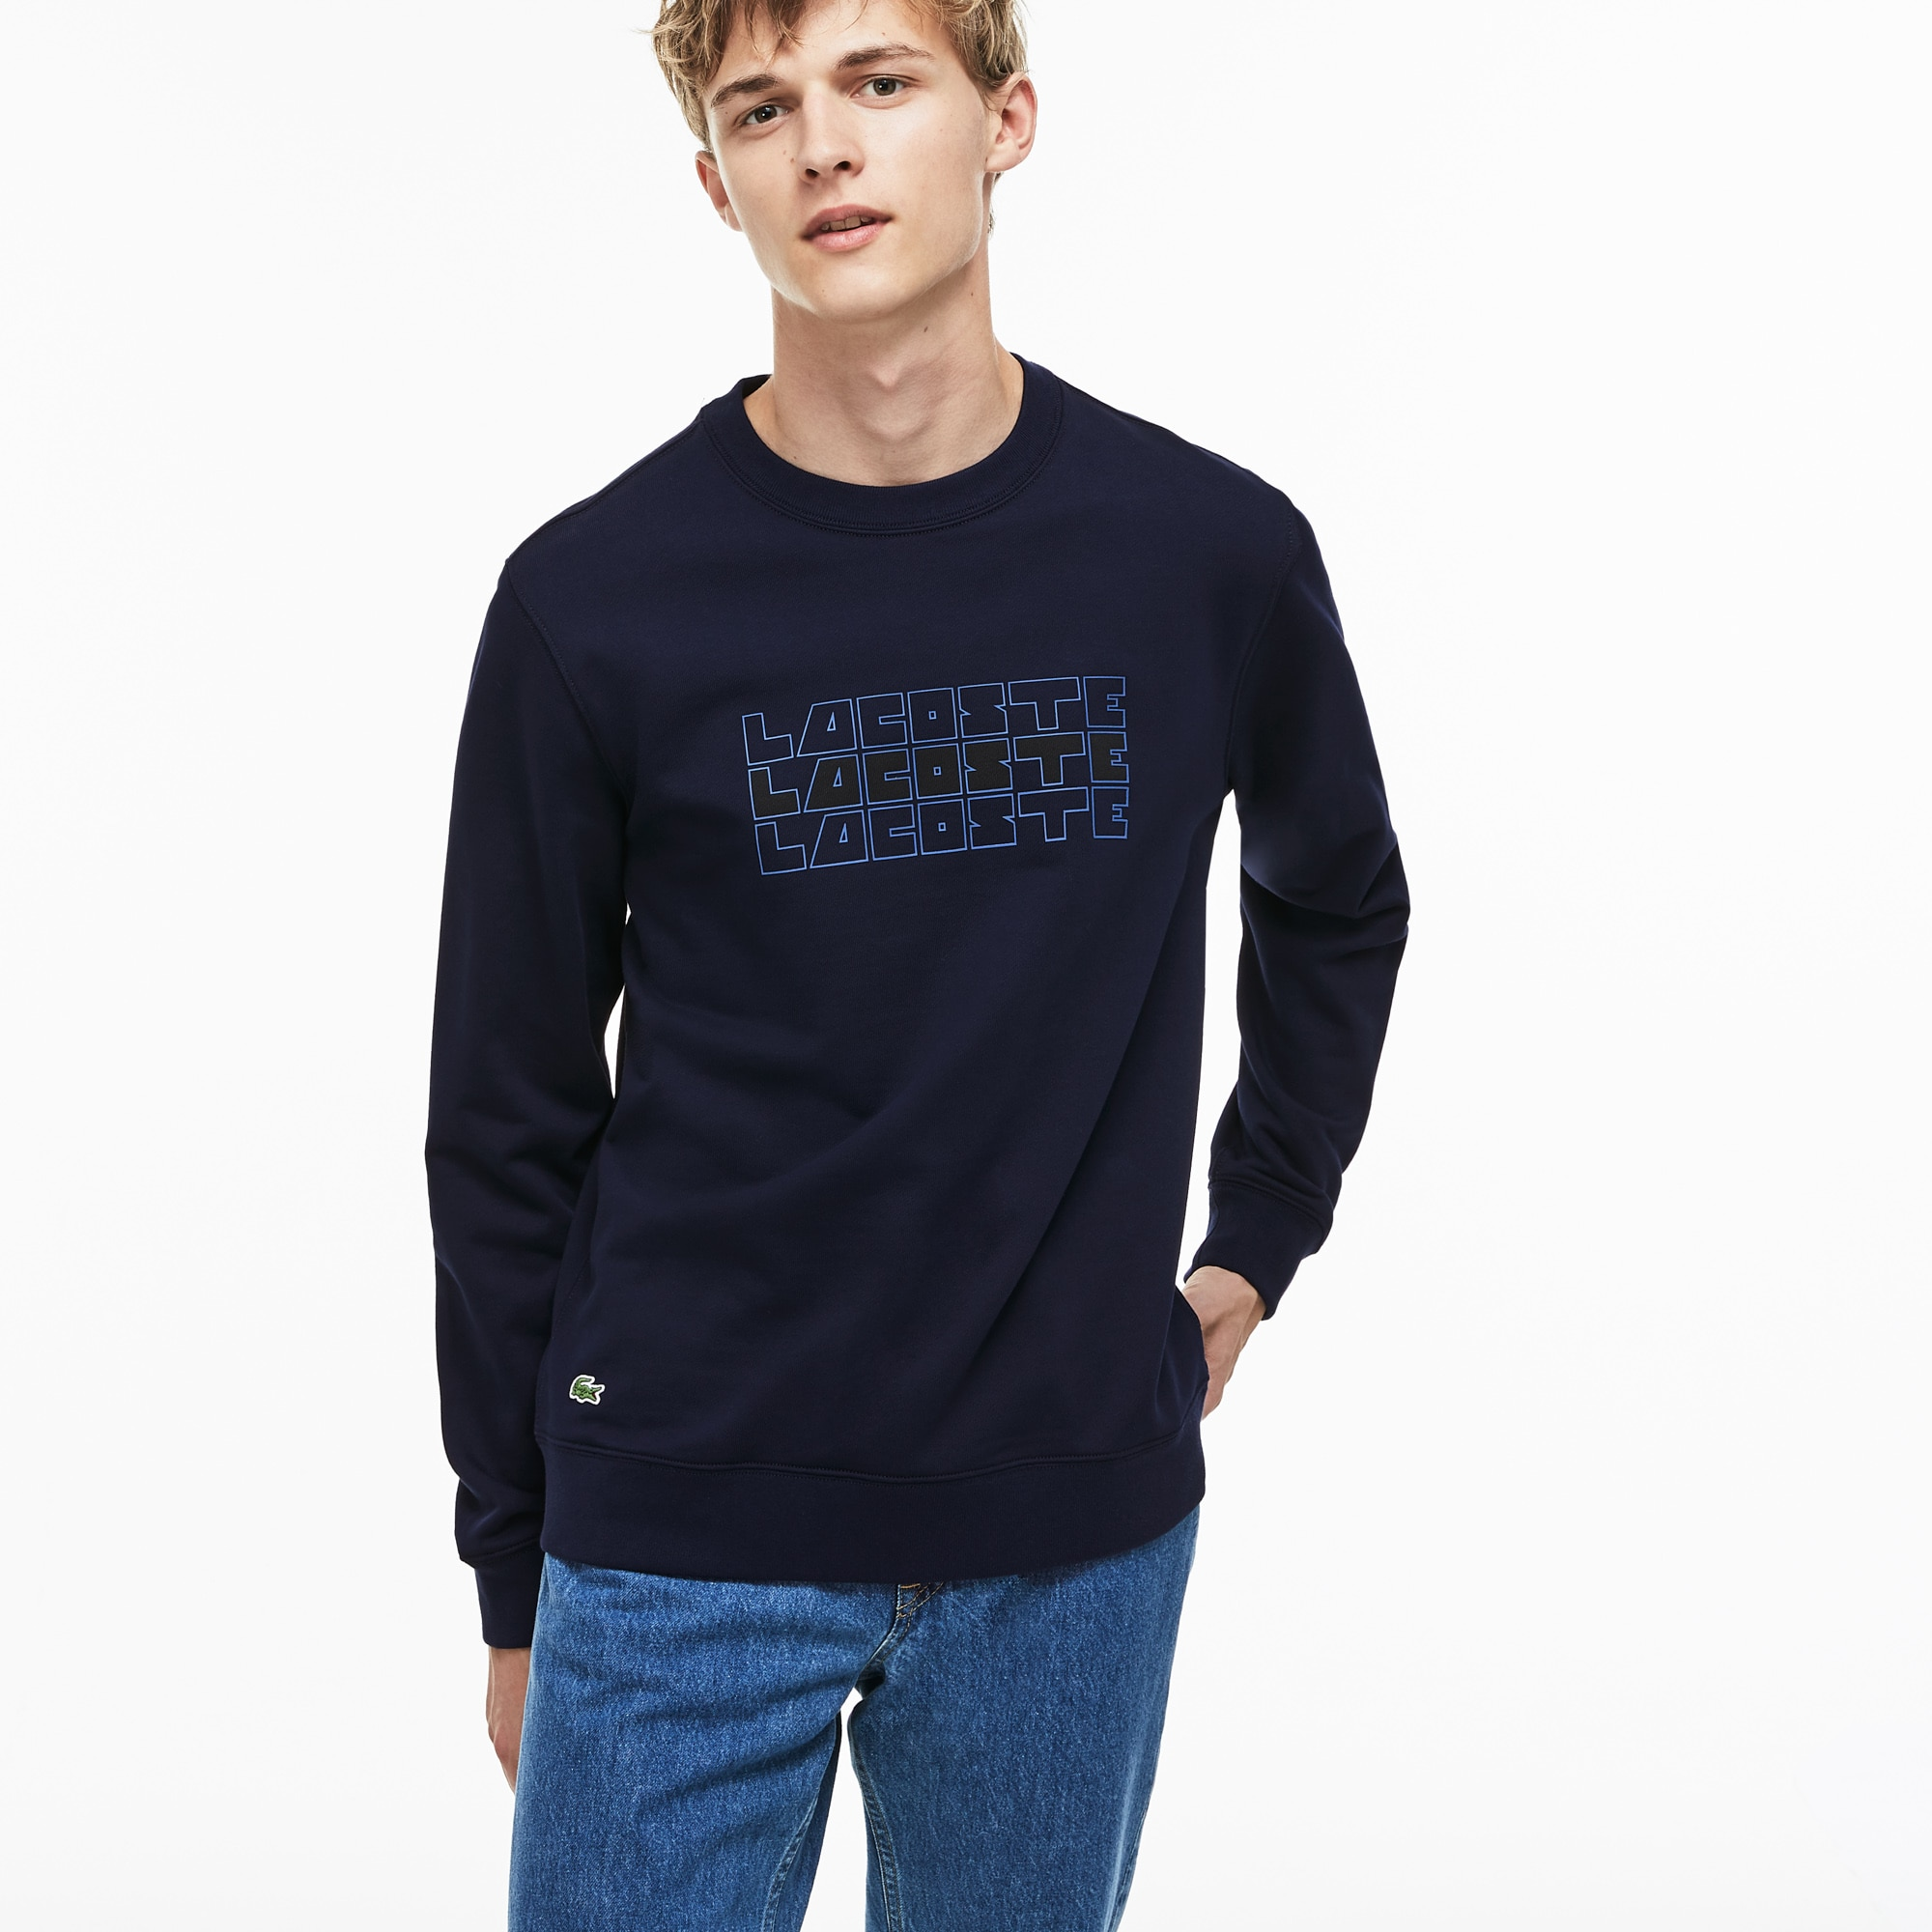 Men's Crew Neck Lettering Fleece Sweatshirt